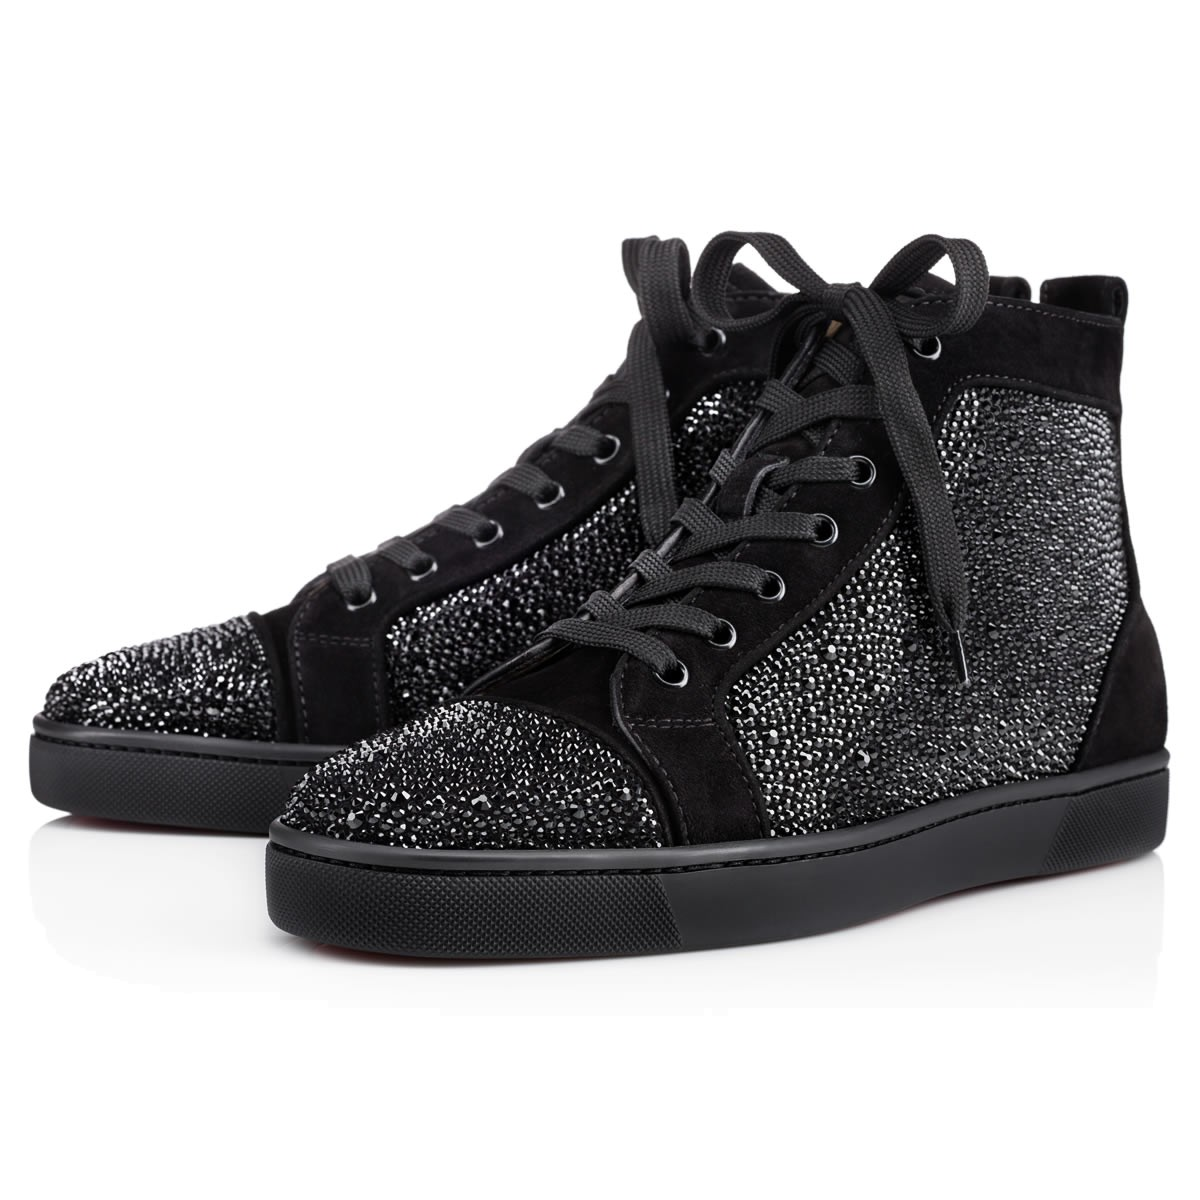 Louis Strass Men s Flat Black Strass - Men Shoes - Christian Louboutin a97f4950b